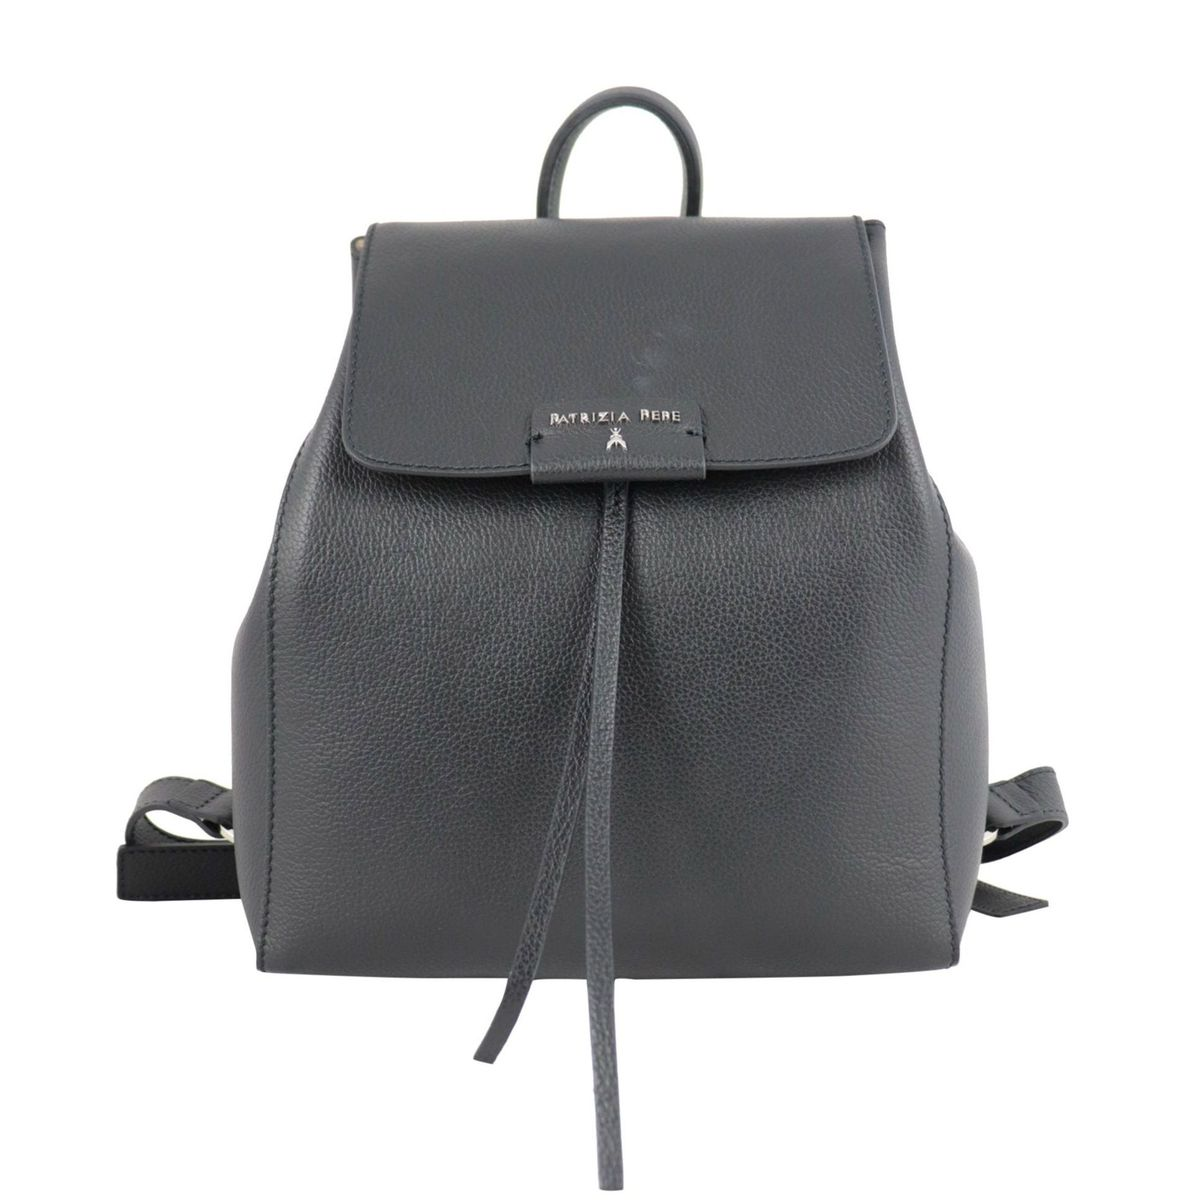 Textured leather backpack with logo Black Patrizia Pepe